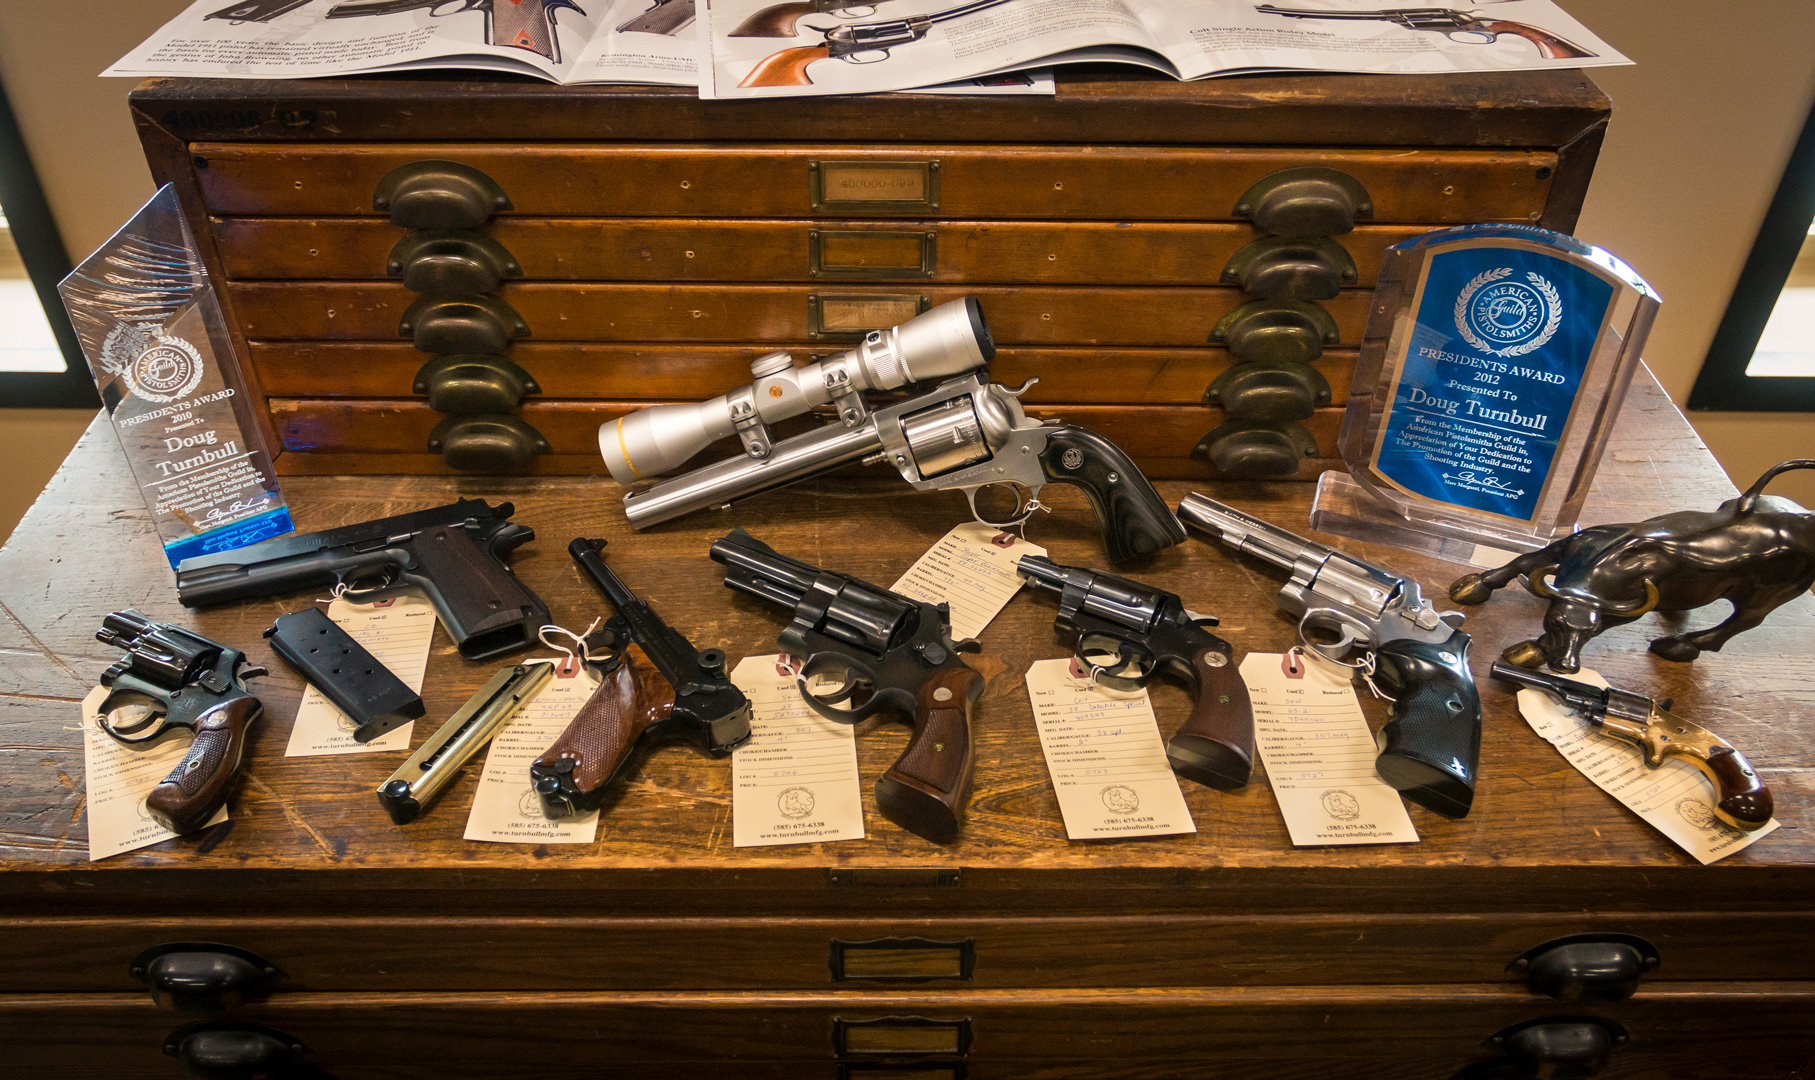 Handgun collection brought in through Turnbull trade-in program